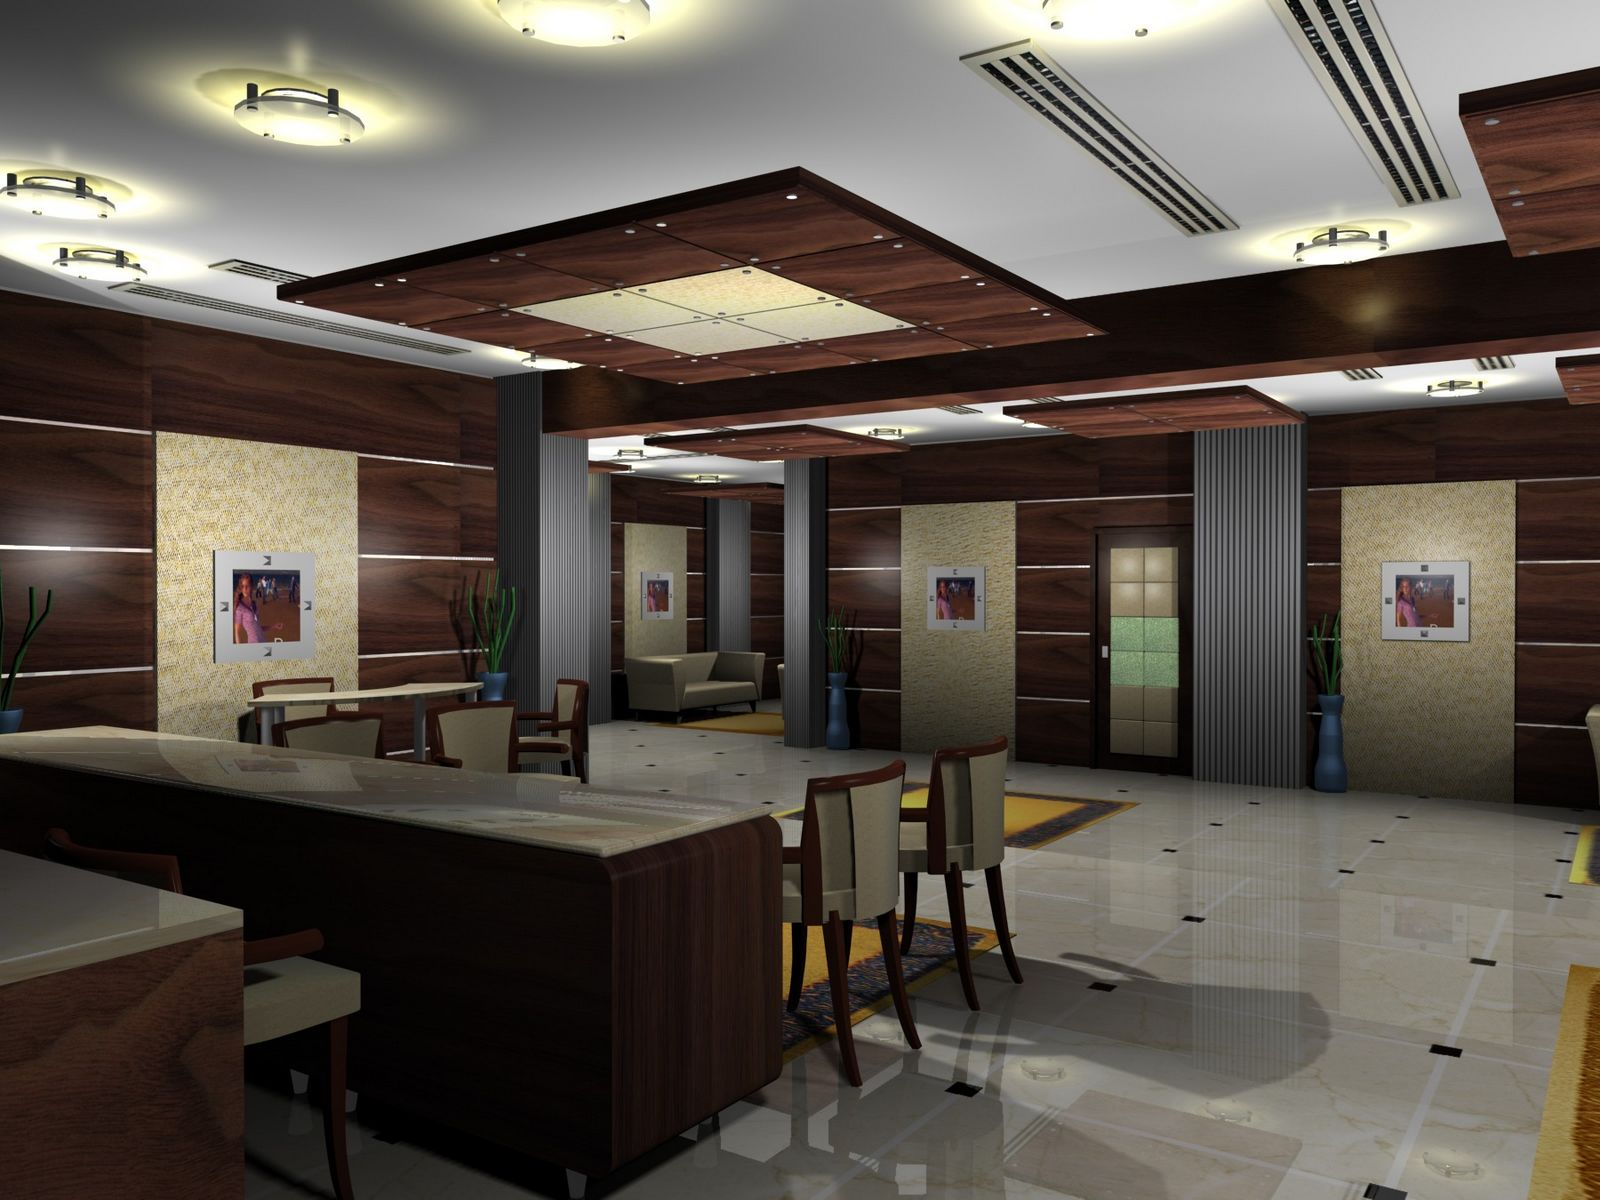 Home lobby design 28 images small lobby houzz lobby for Small hotel interior design